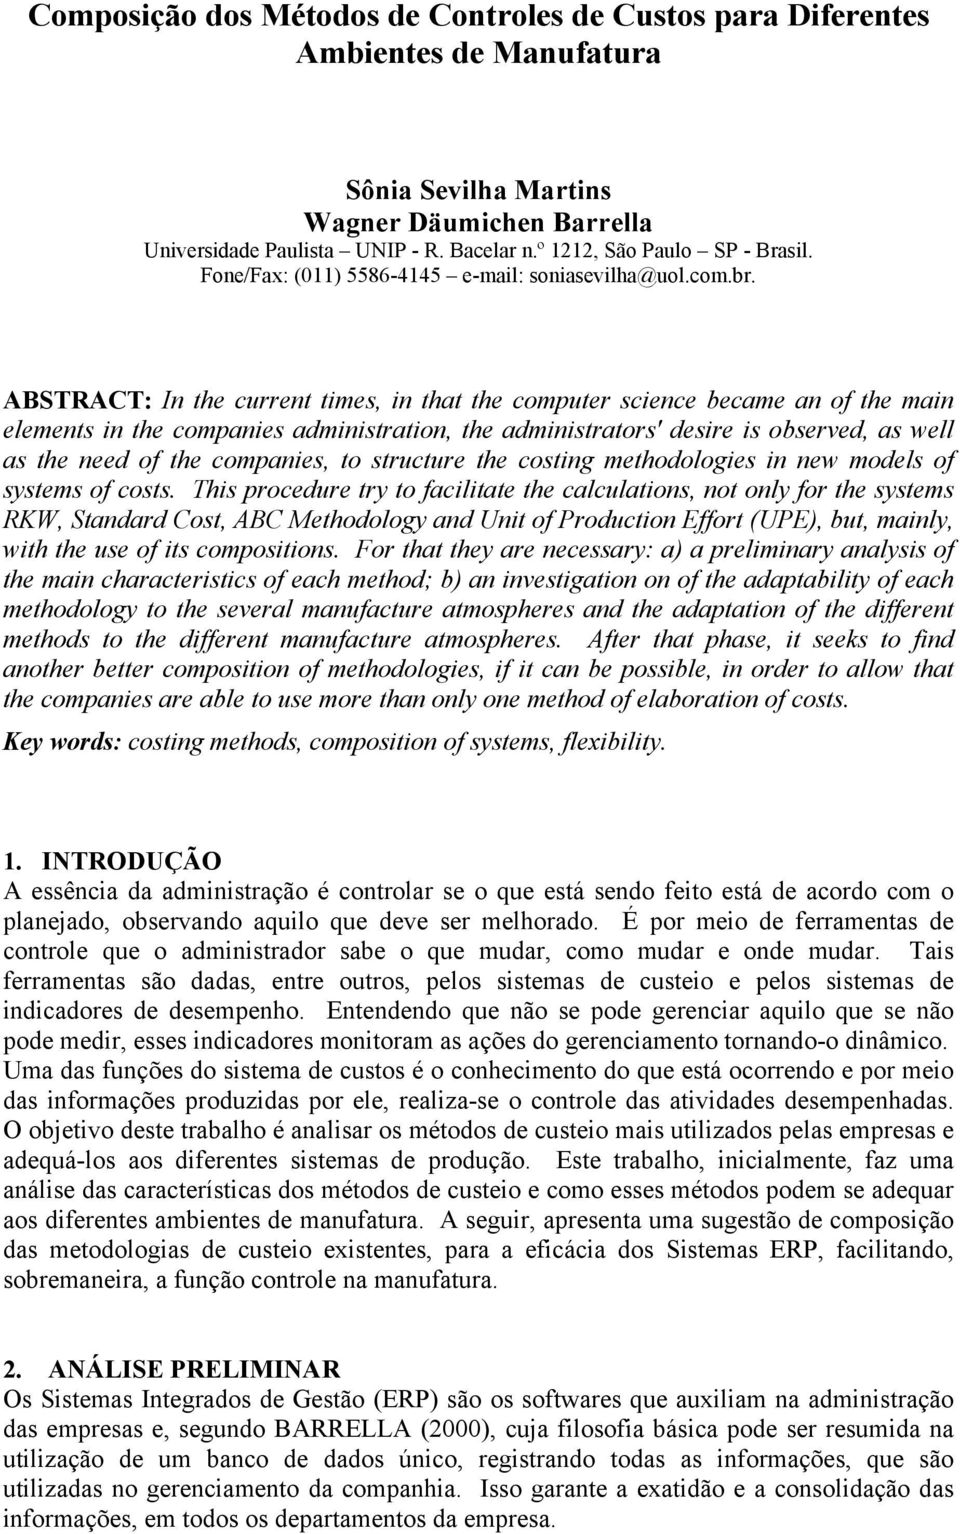 ABSTRACT: In the current times, in that the computer science became an of the main elements in the companies administration, the administrators' desire is observed, as well as the need of the